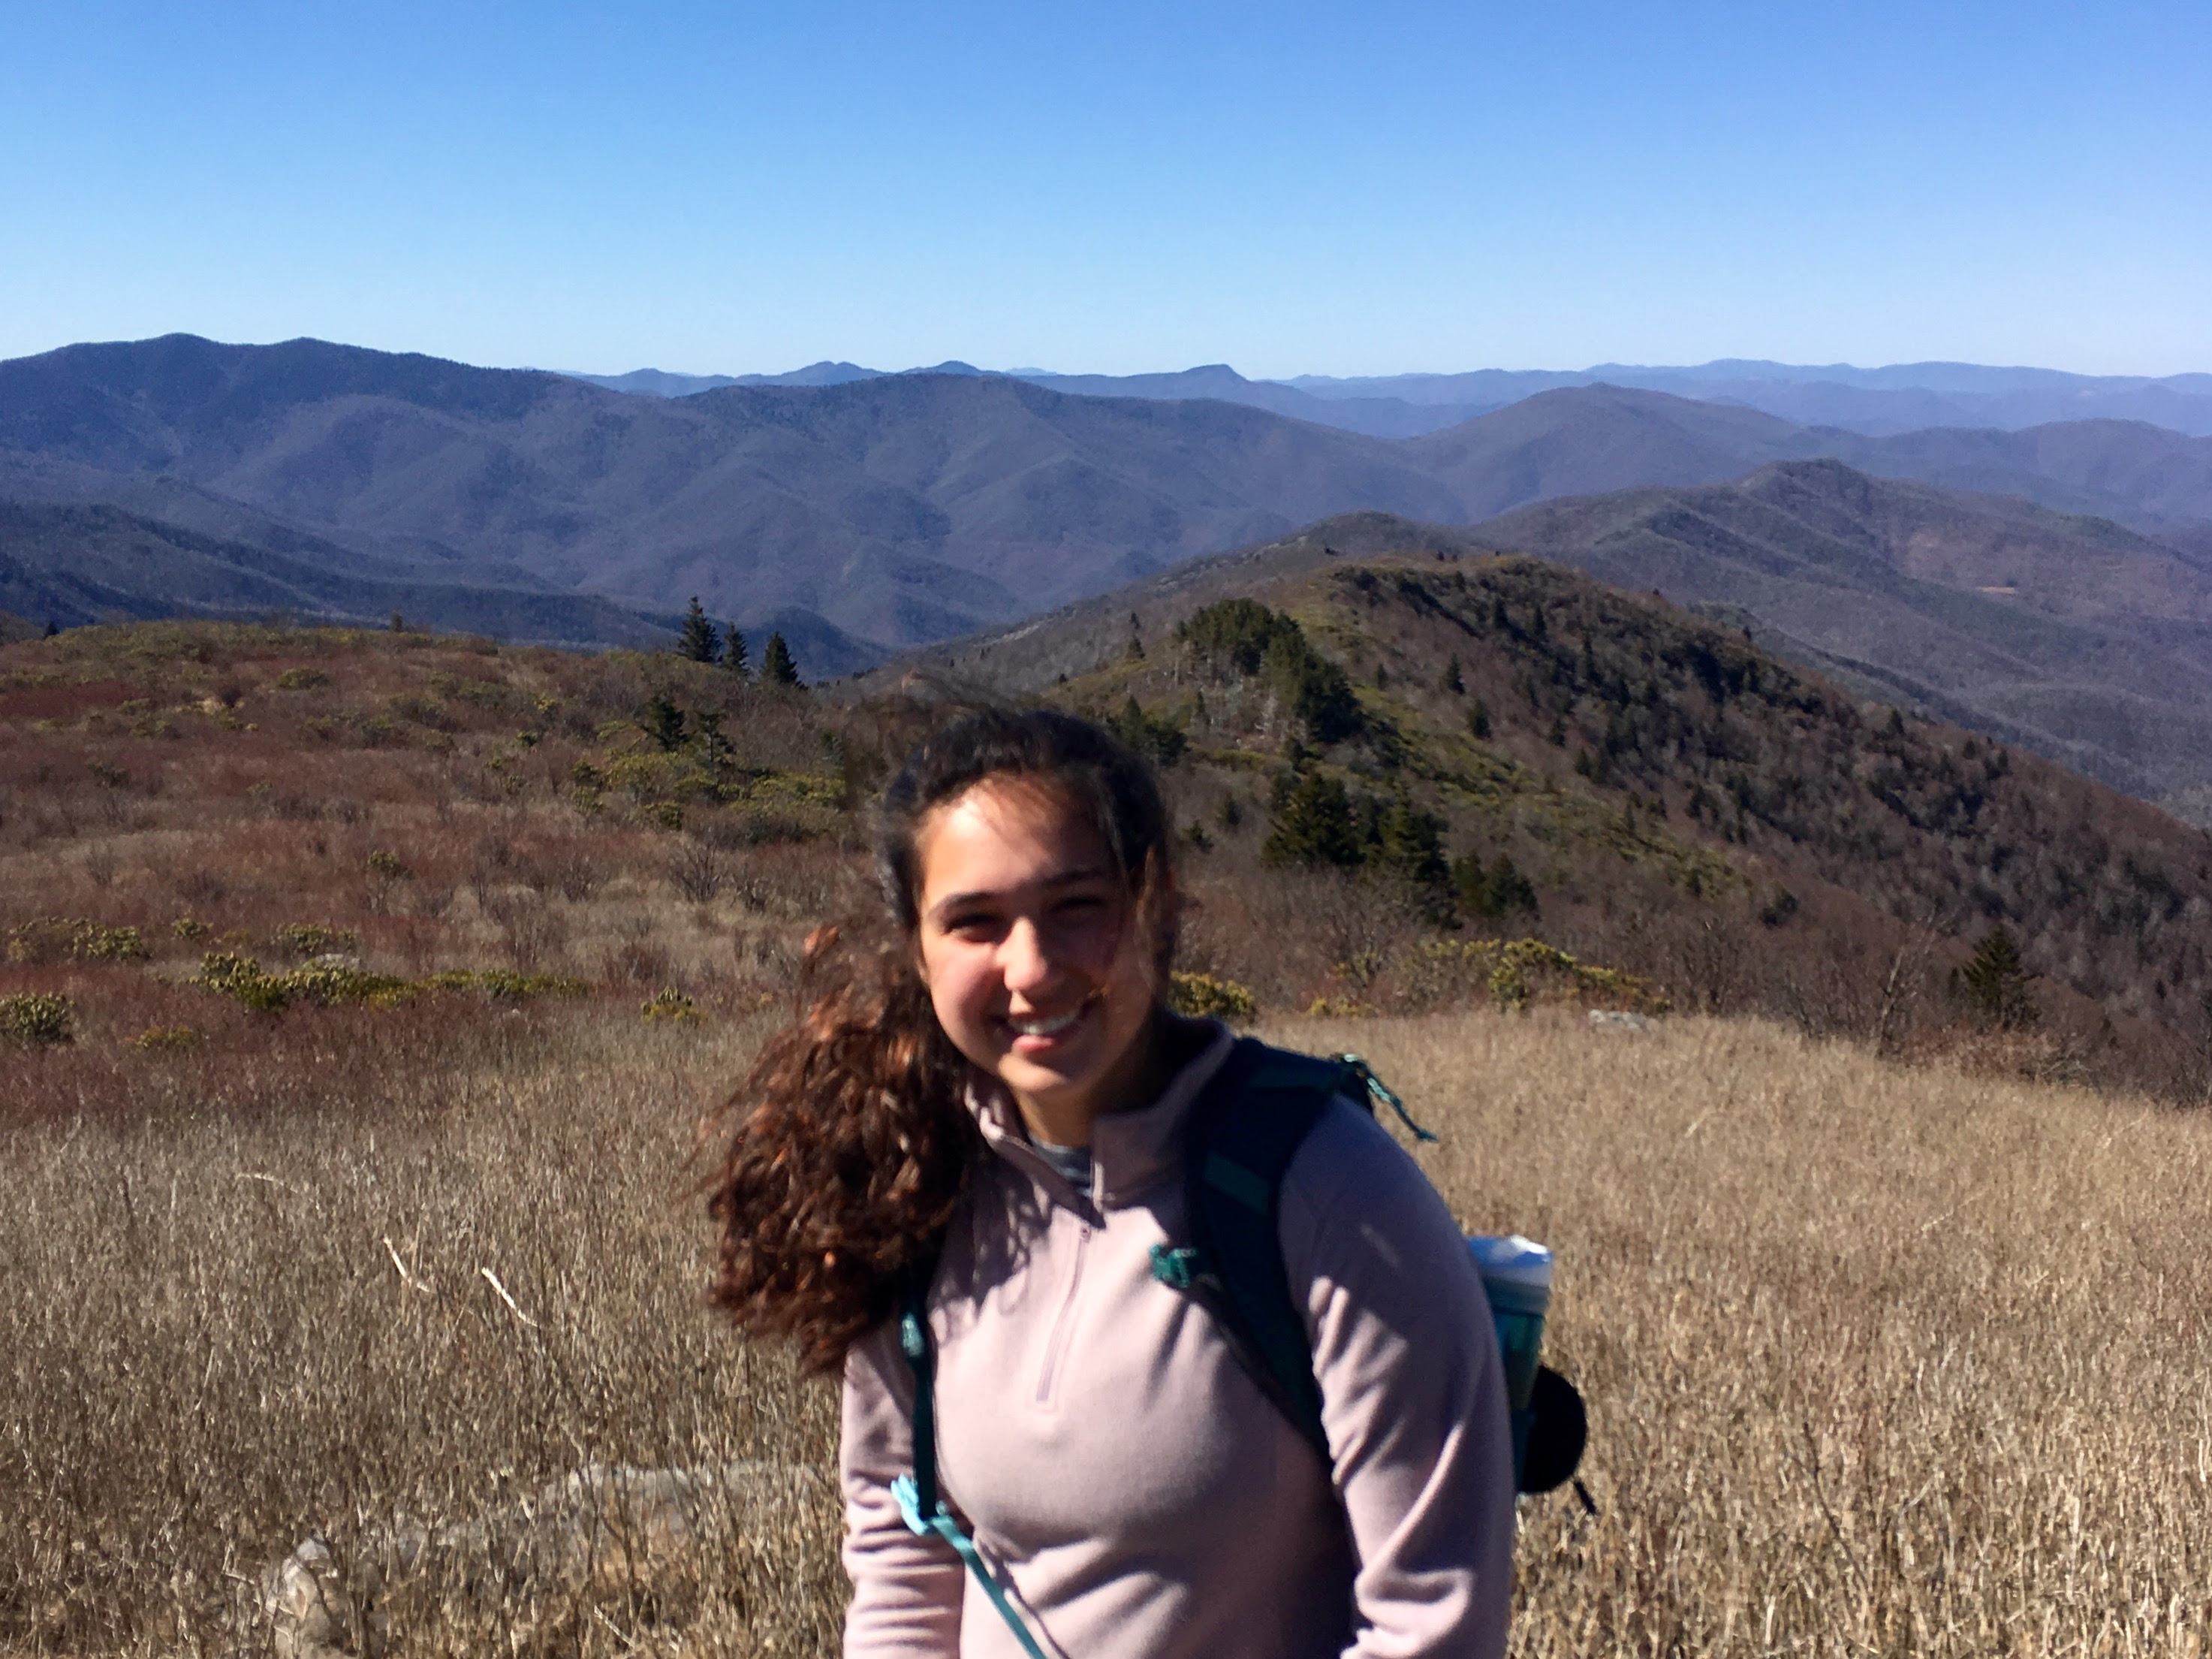 Trip Leader Lenore Alexander smiling in front of a scenic mountain view